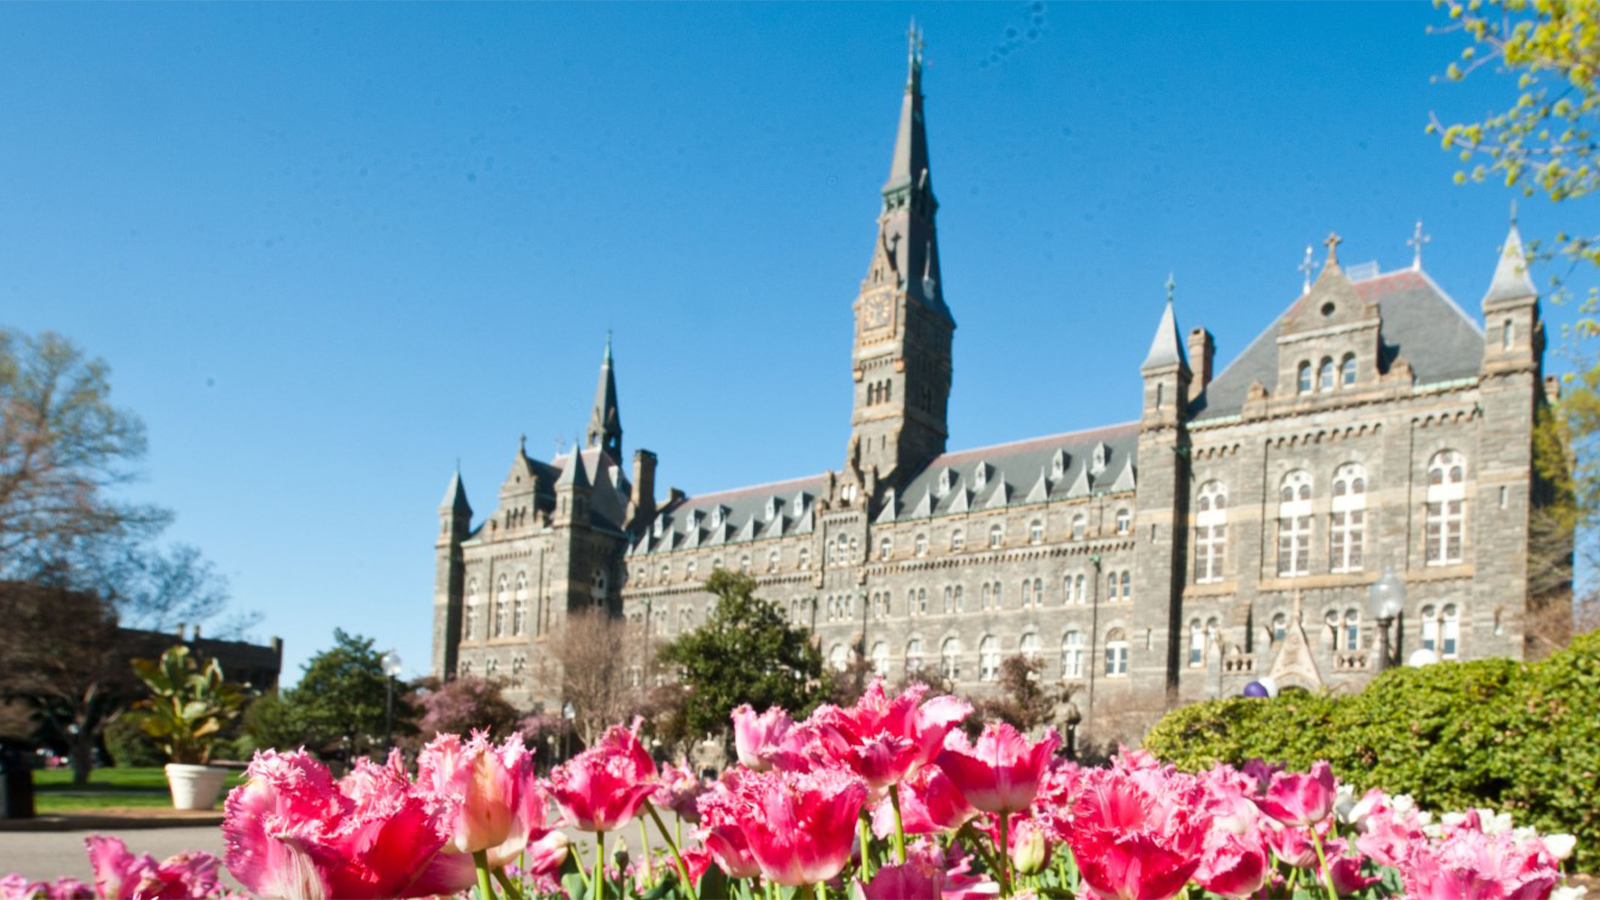 Flowers and Healy Hall